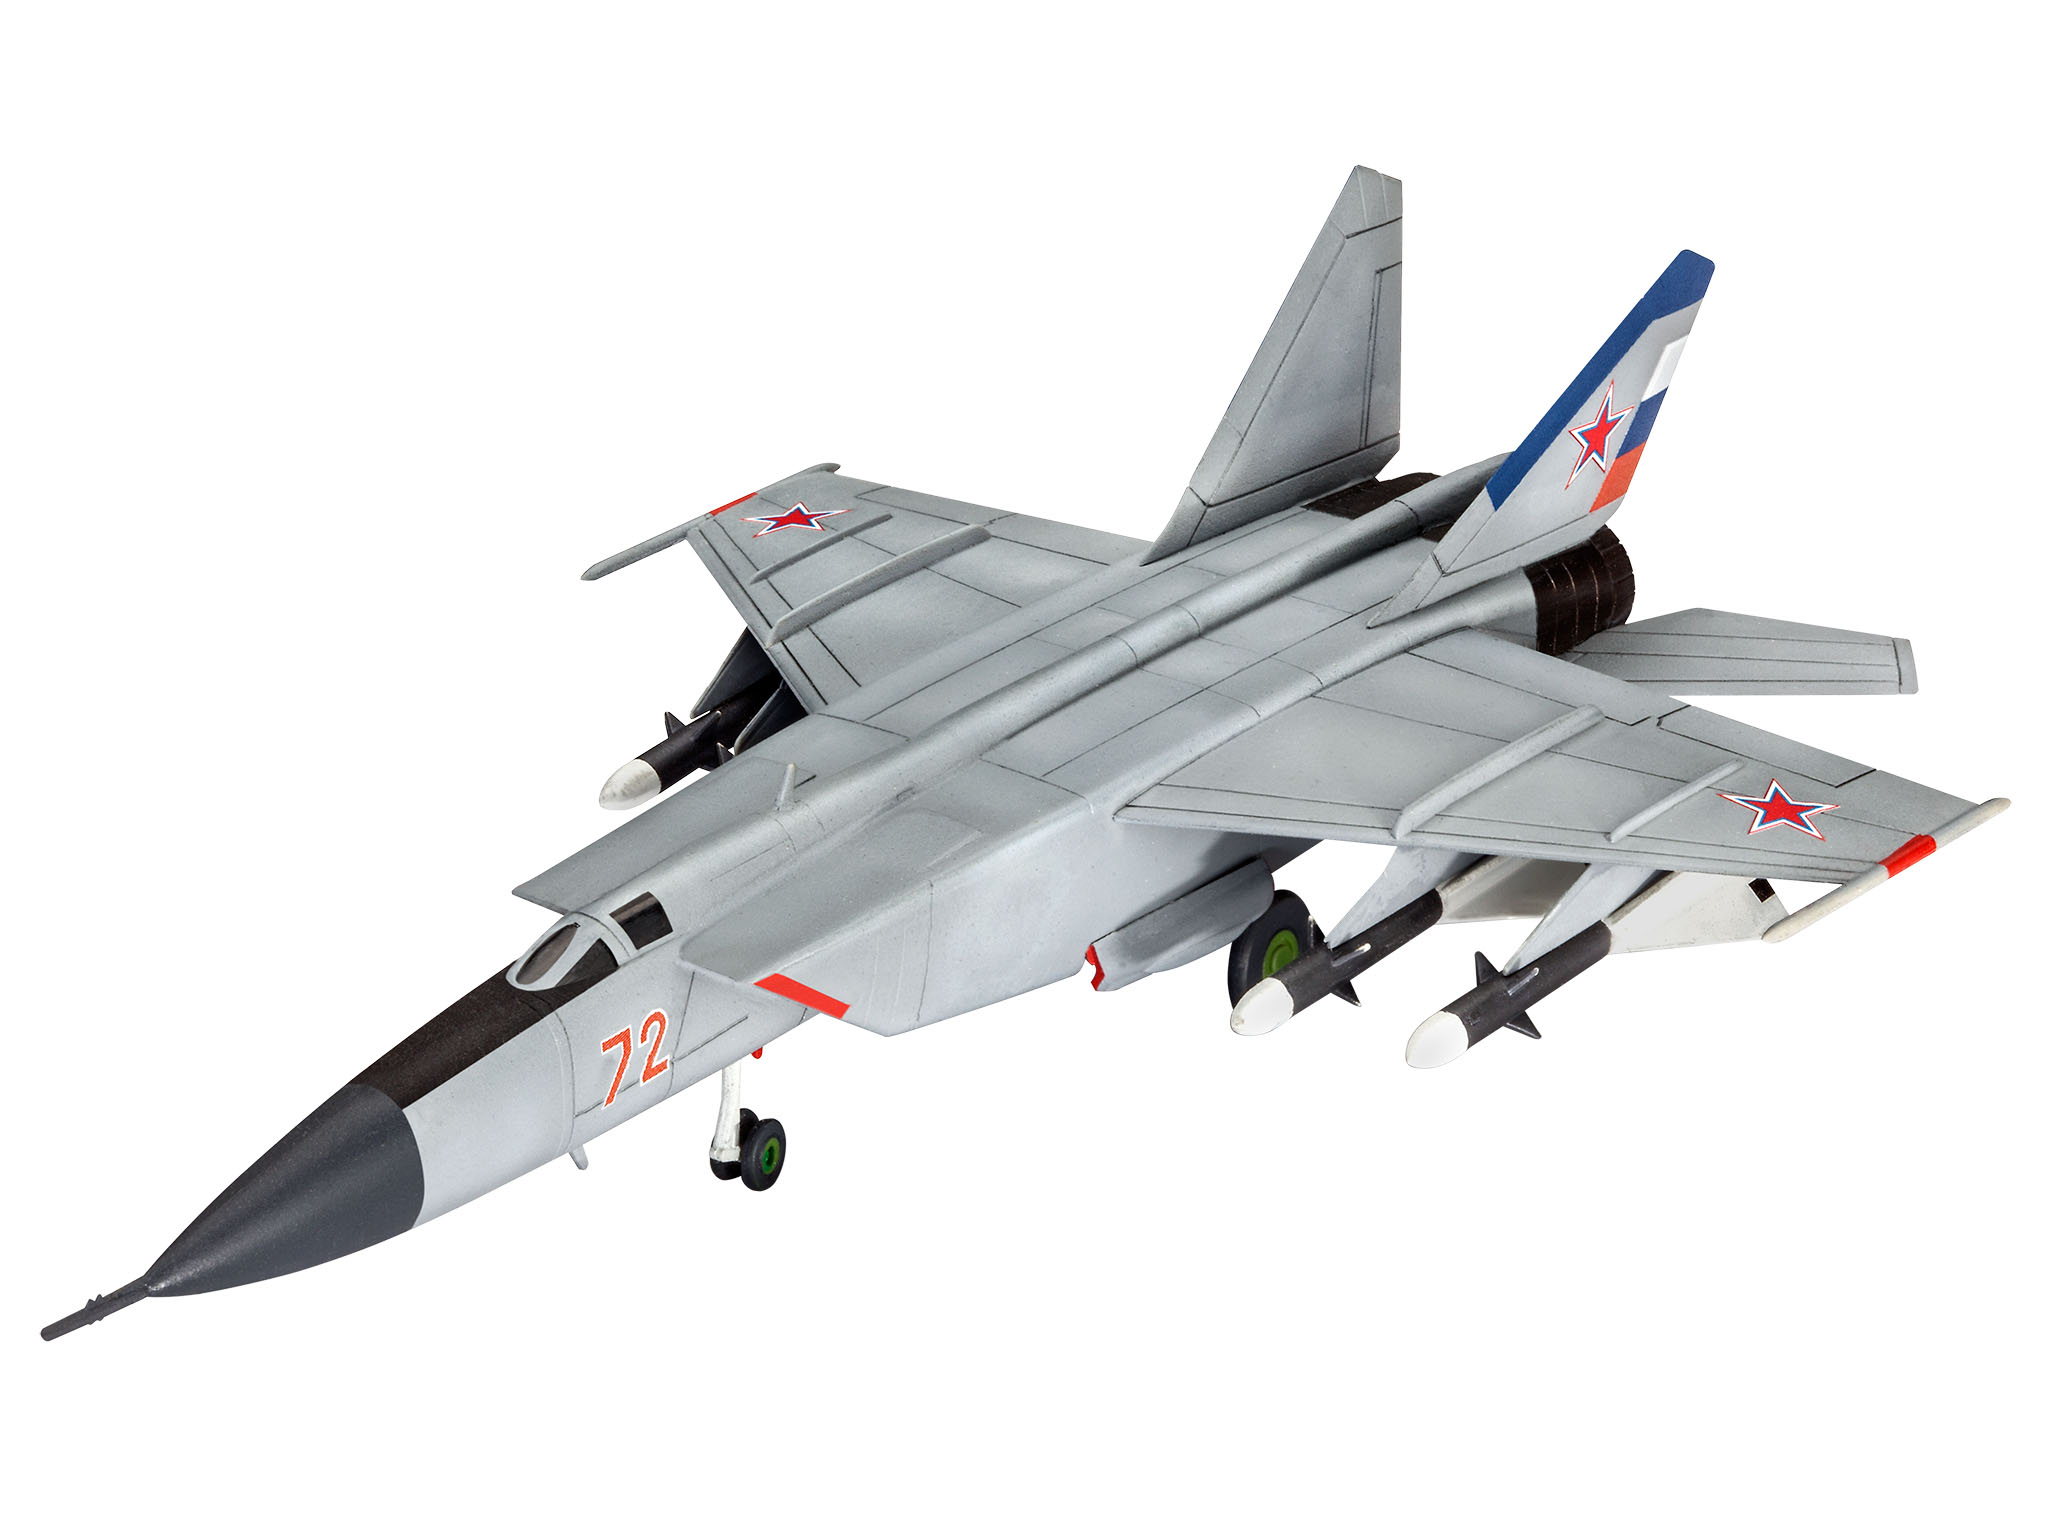 Military Vehicles For Sale >> Revell Shop | MiG-25 Foxbat | Revell Shop